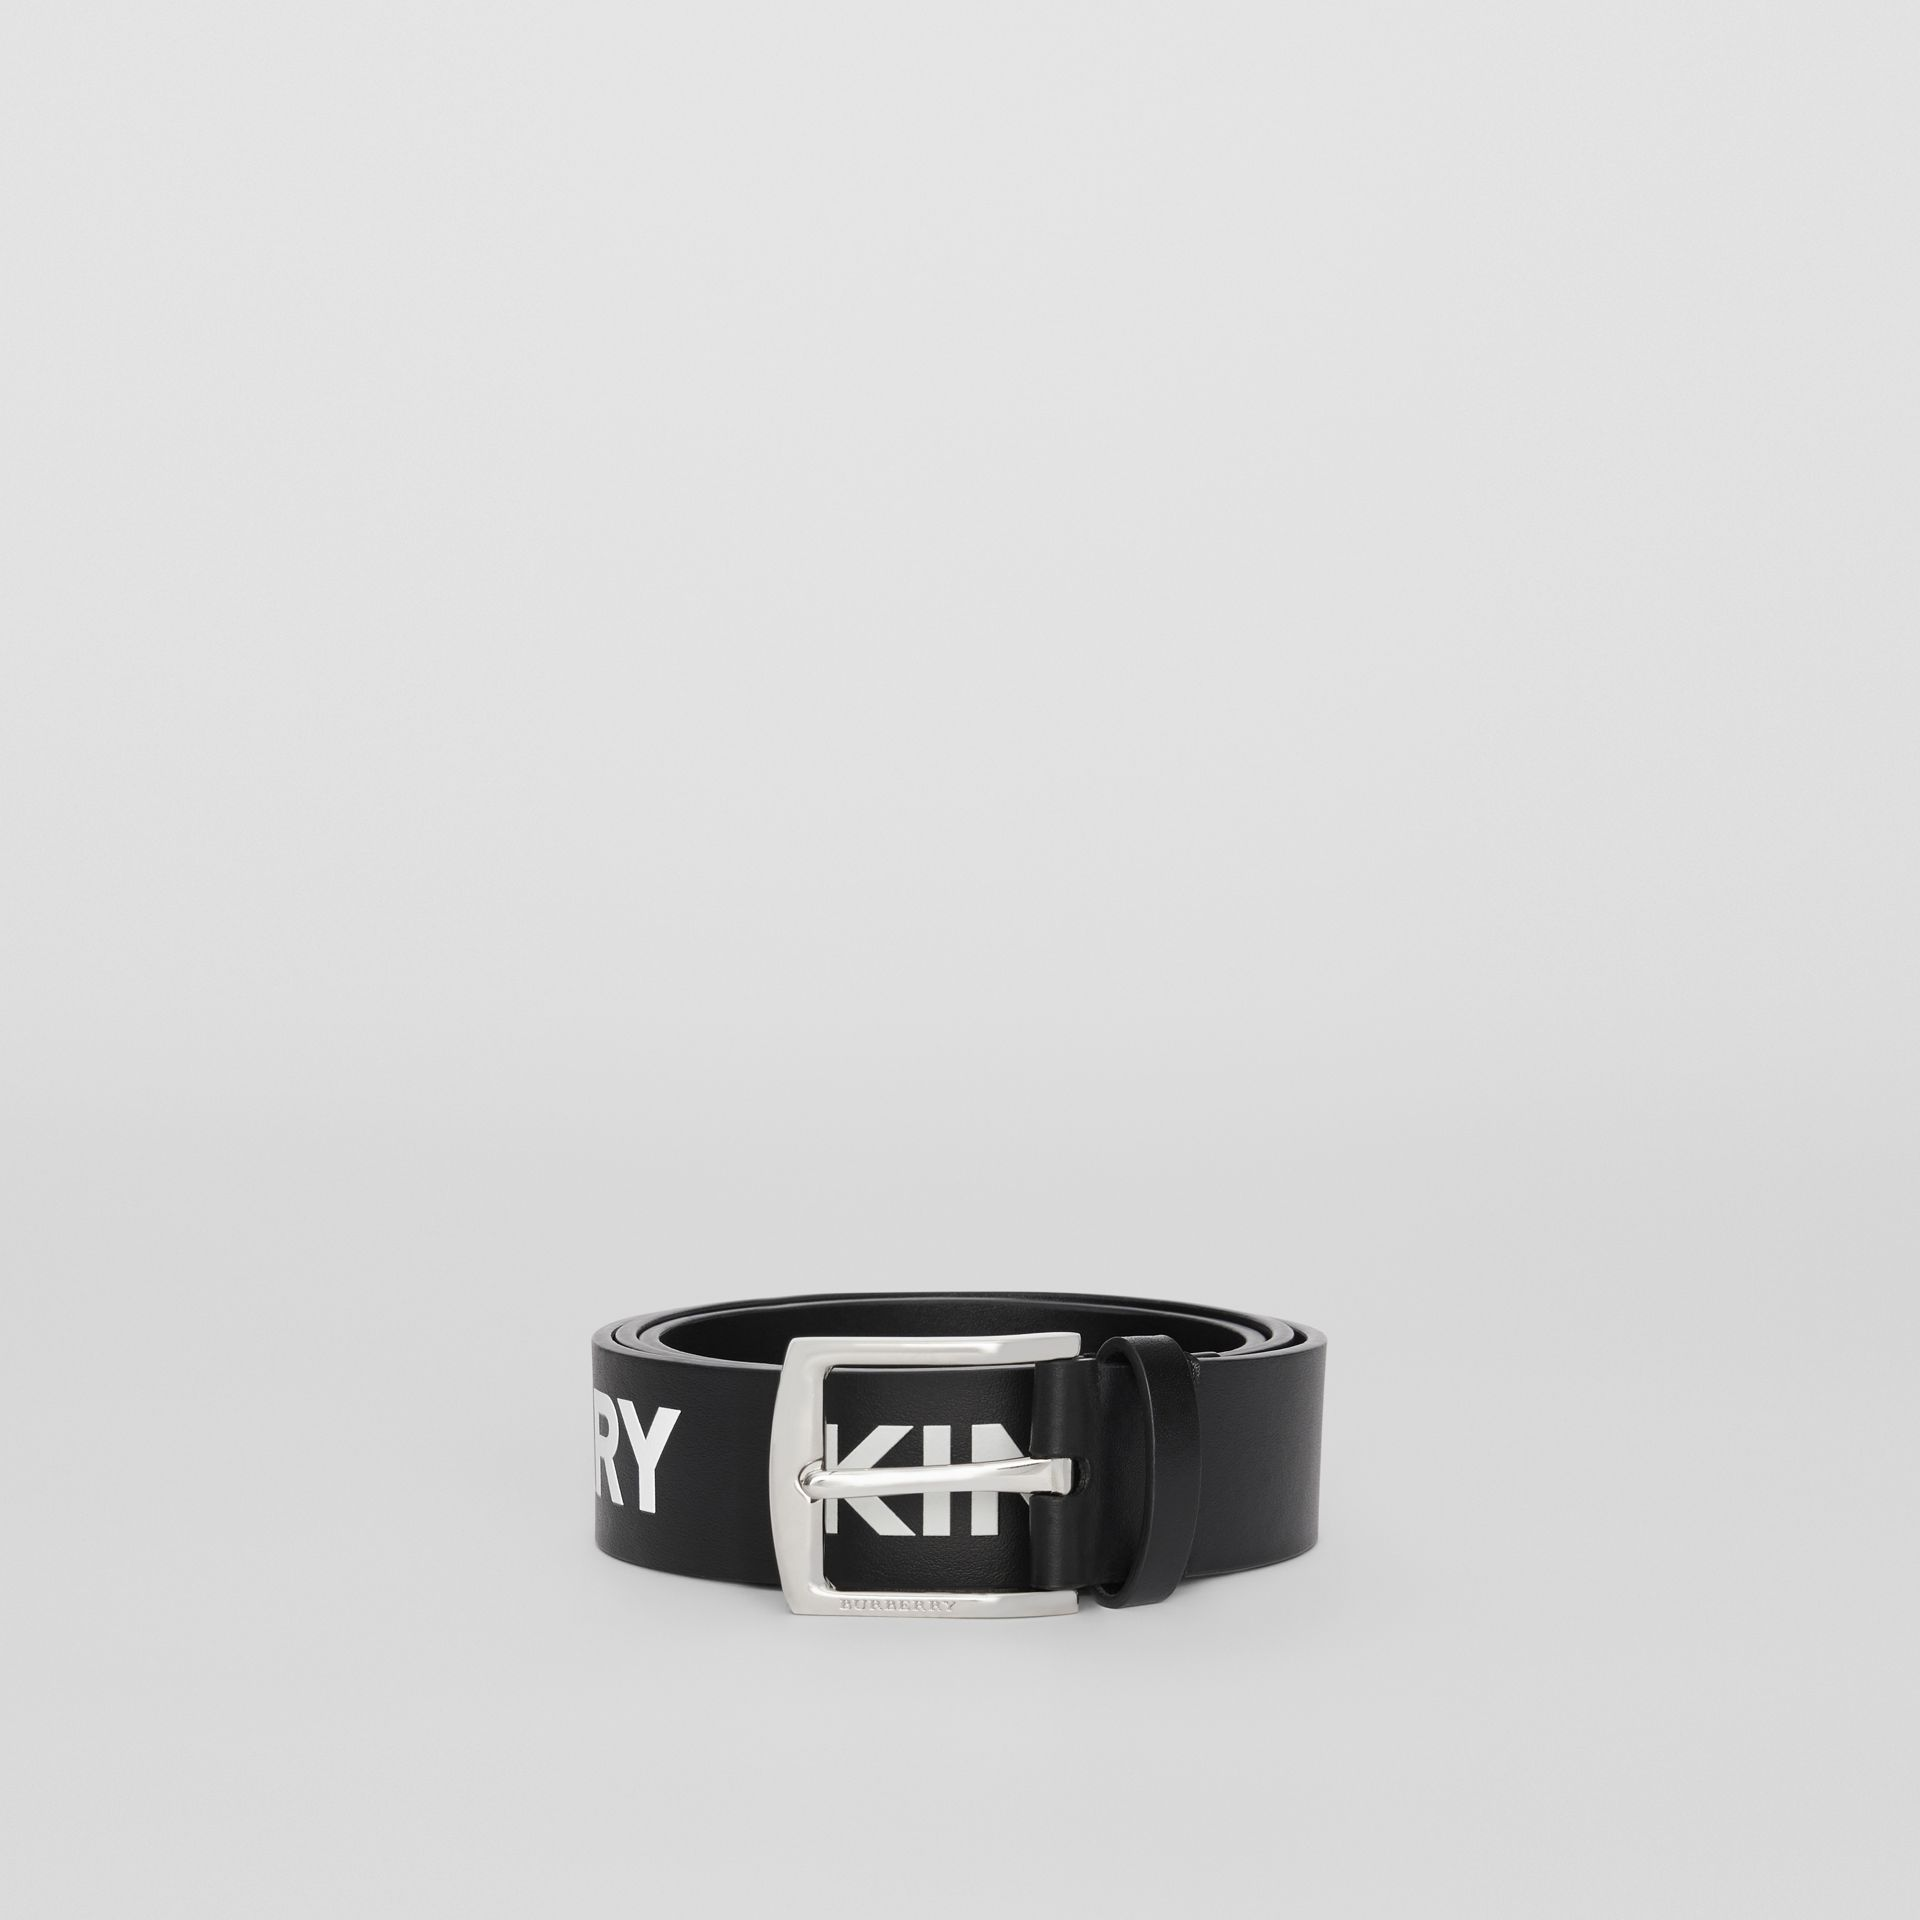 Kingdom Print Leather Belt in Black - Men | Burberry - gallery image 2